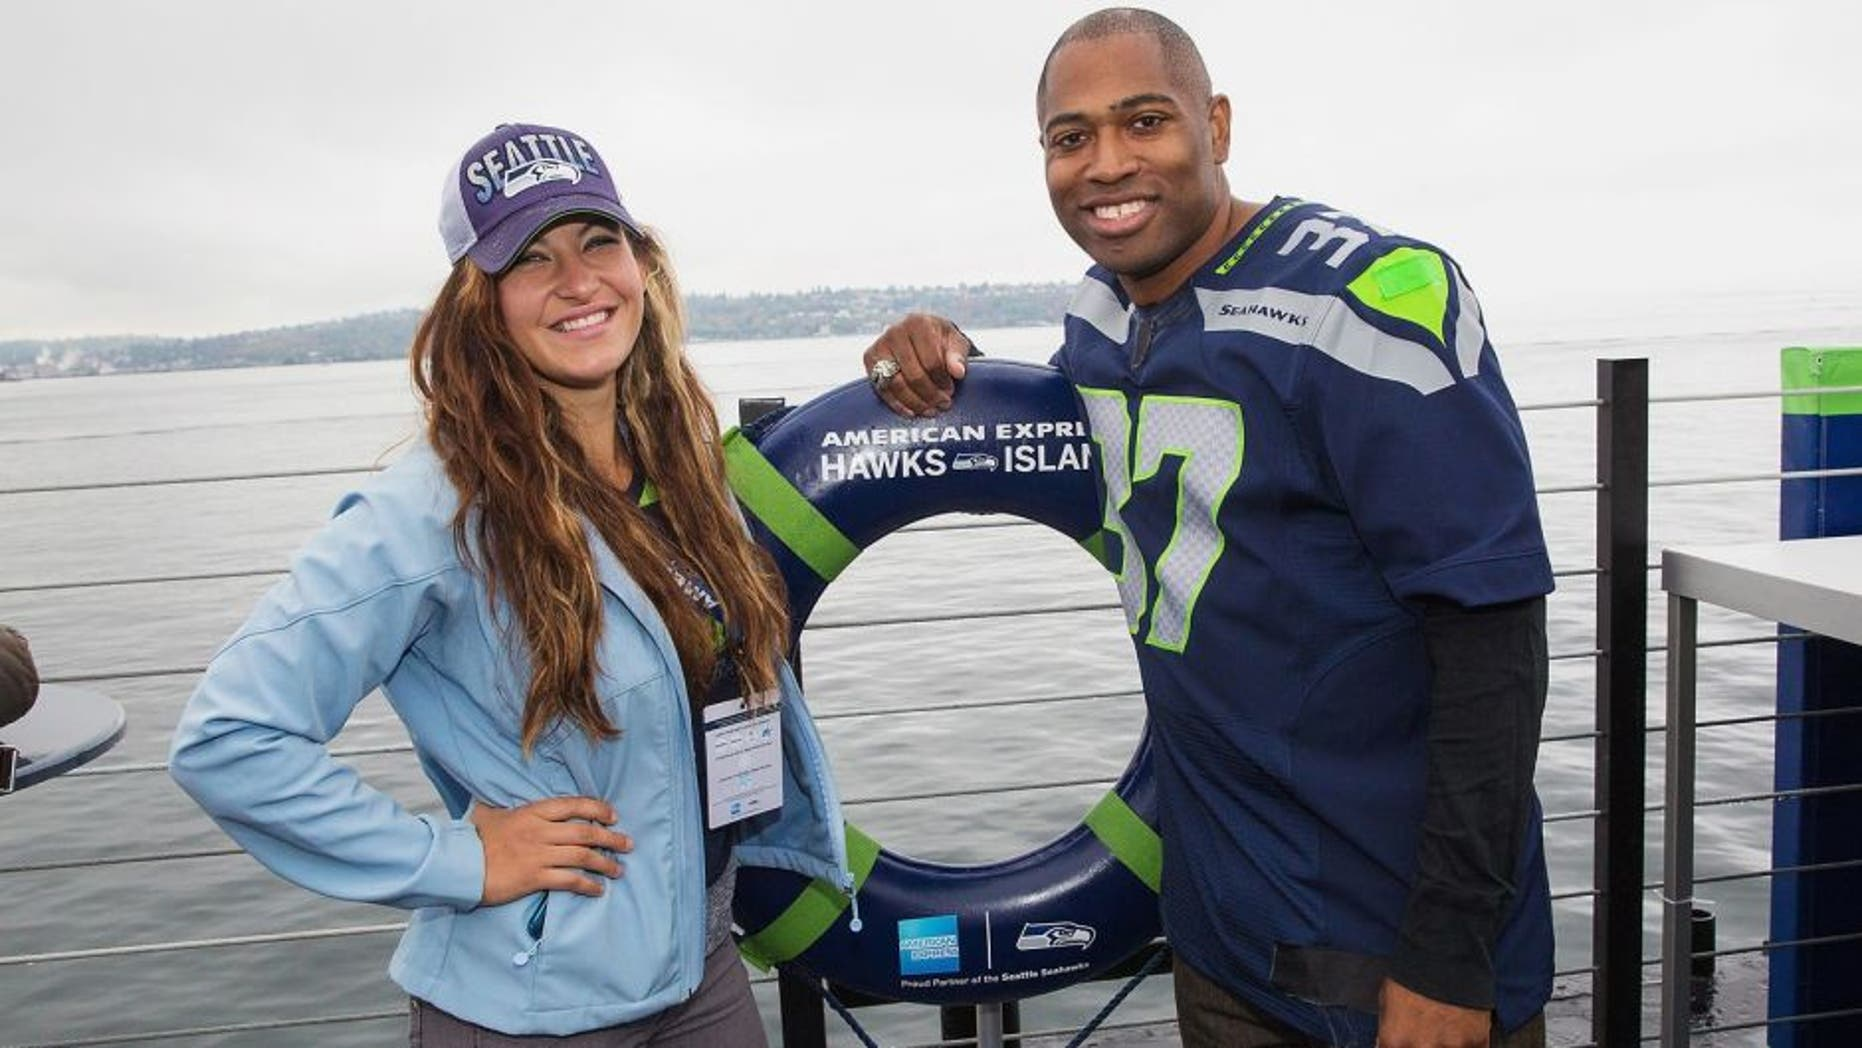 SEATTLE, WA - OCTOBER 18: UFC Mixed Martial Arts Fighter Miesha Tate and Seattle Seahawks Legend Shaun Alexander attend the American Express hosted, never-before-seen pre-game experience for Seattle Seahawks fans and Card Members called American Express Hawks Island on a barge on the Puget Sound. on October 18, 2015 in Seattle, Washington. (Photo by Mat Hayward/Getty Images for American Express)